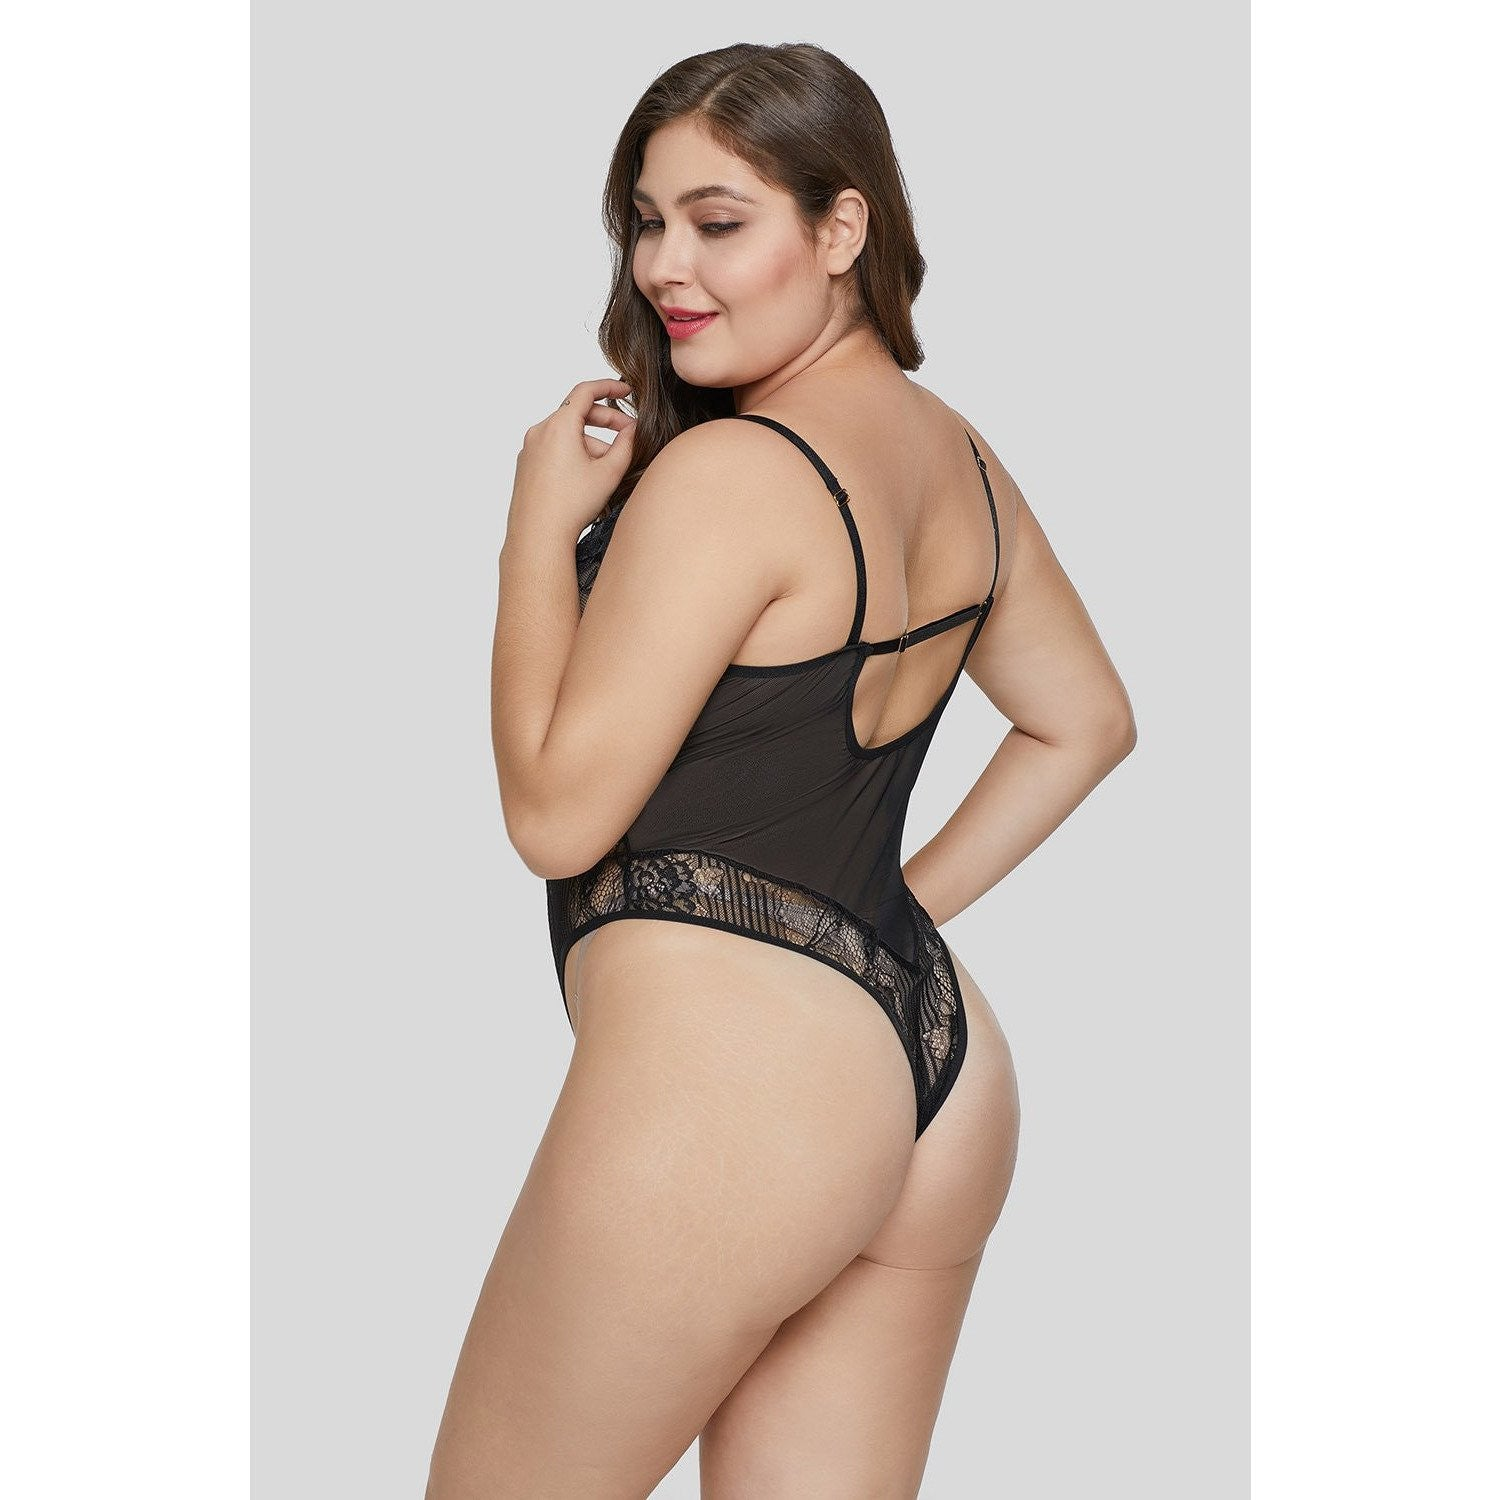 ec959b777 KELLIPS Black Plus Size Teddy Lingerie - KELLIPS